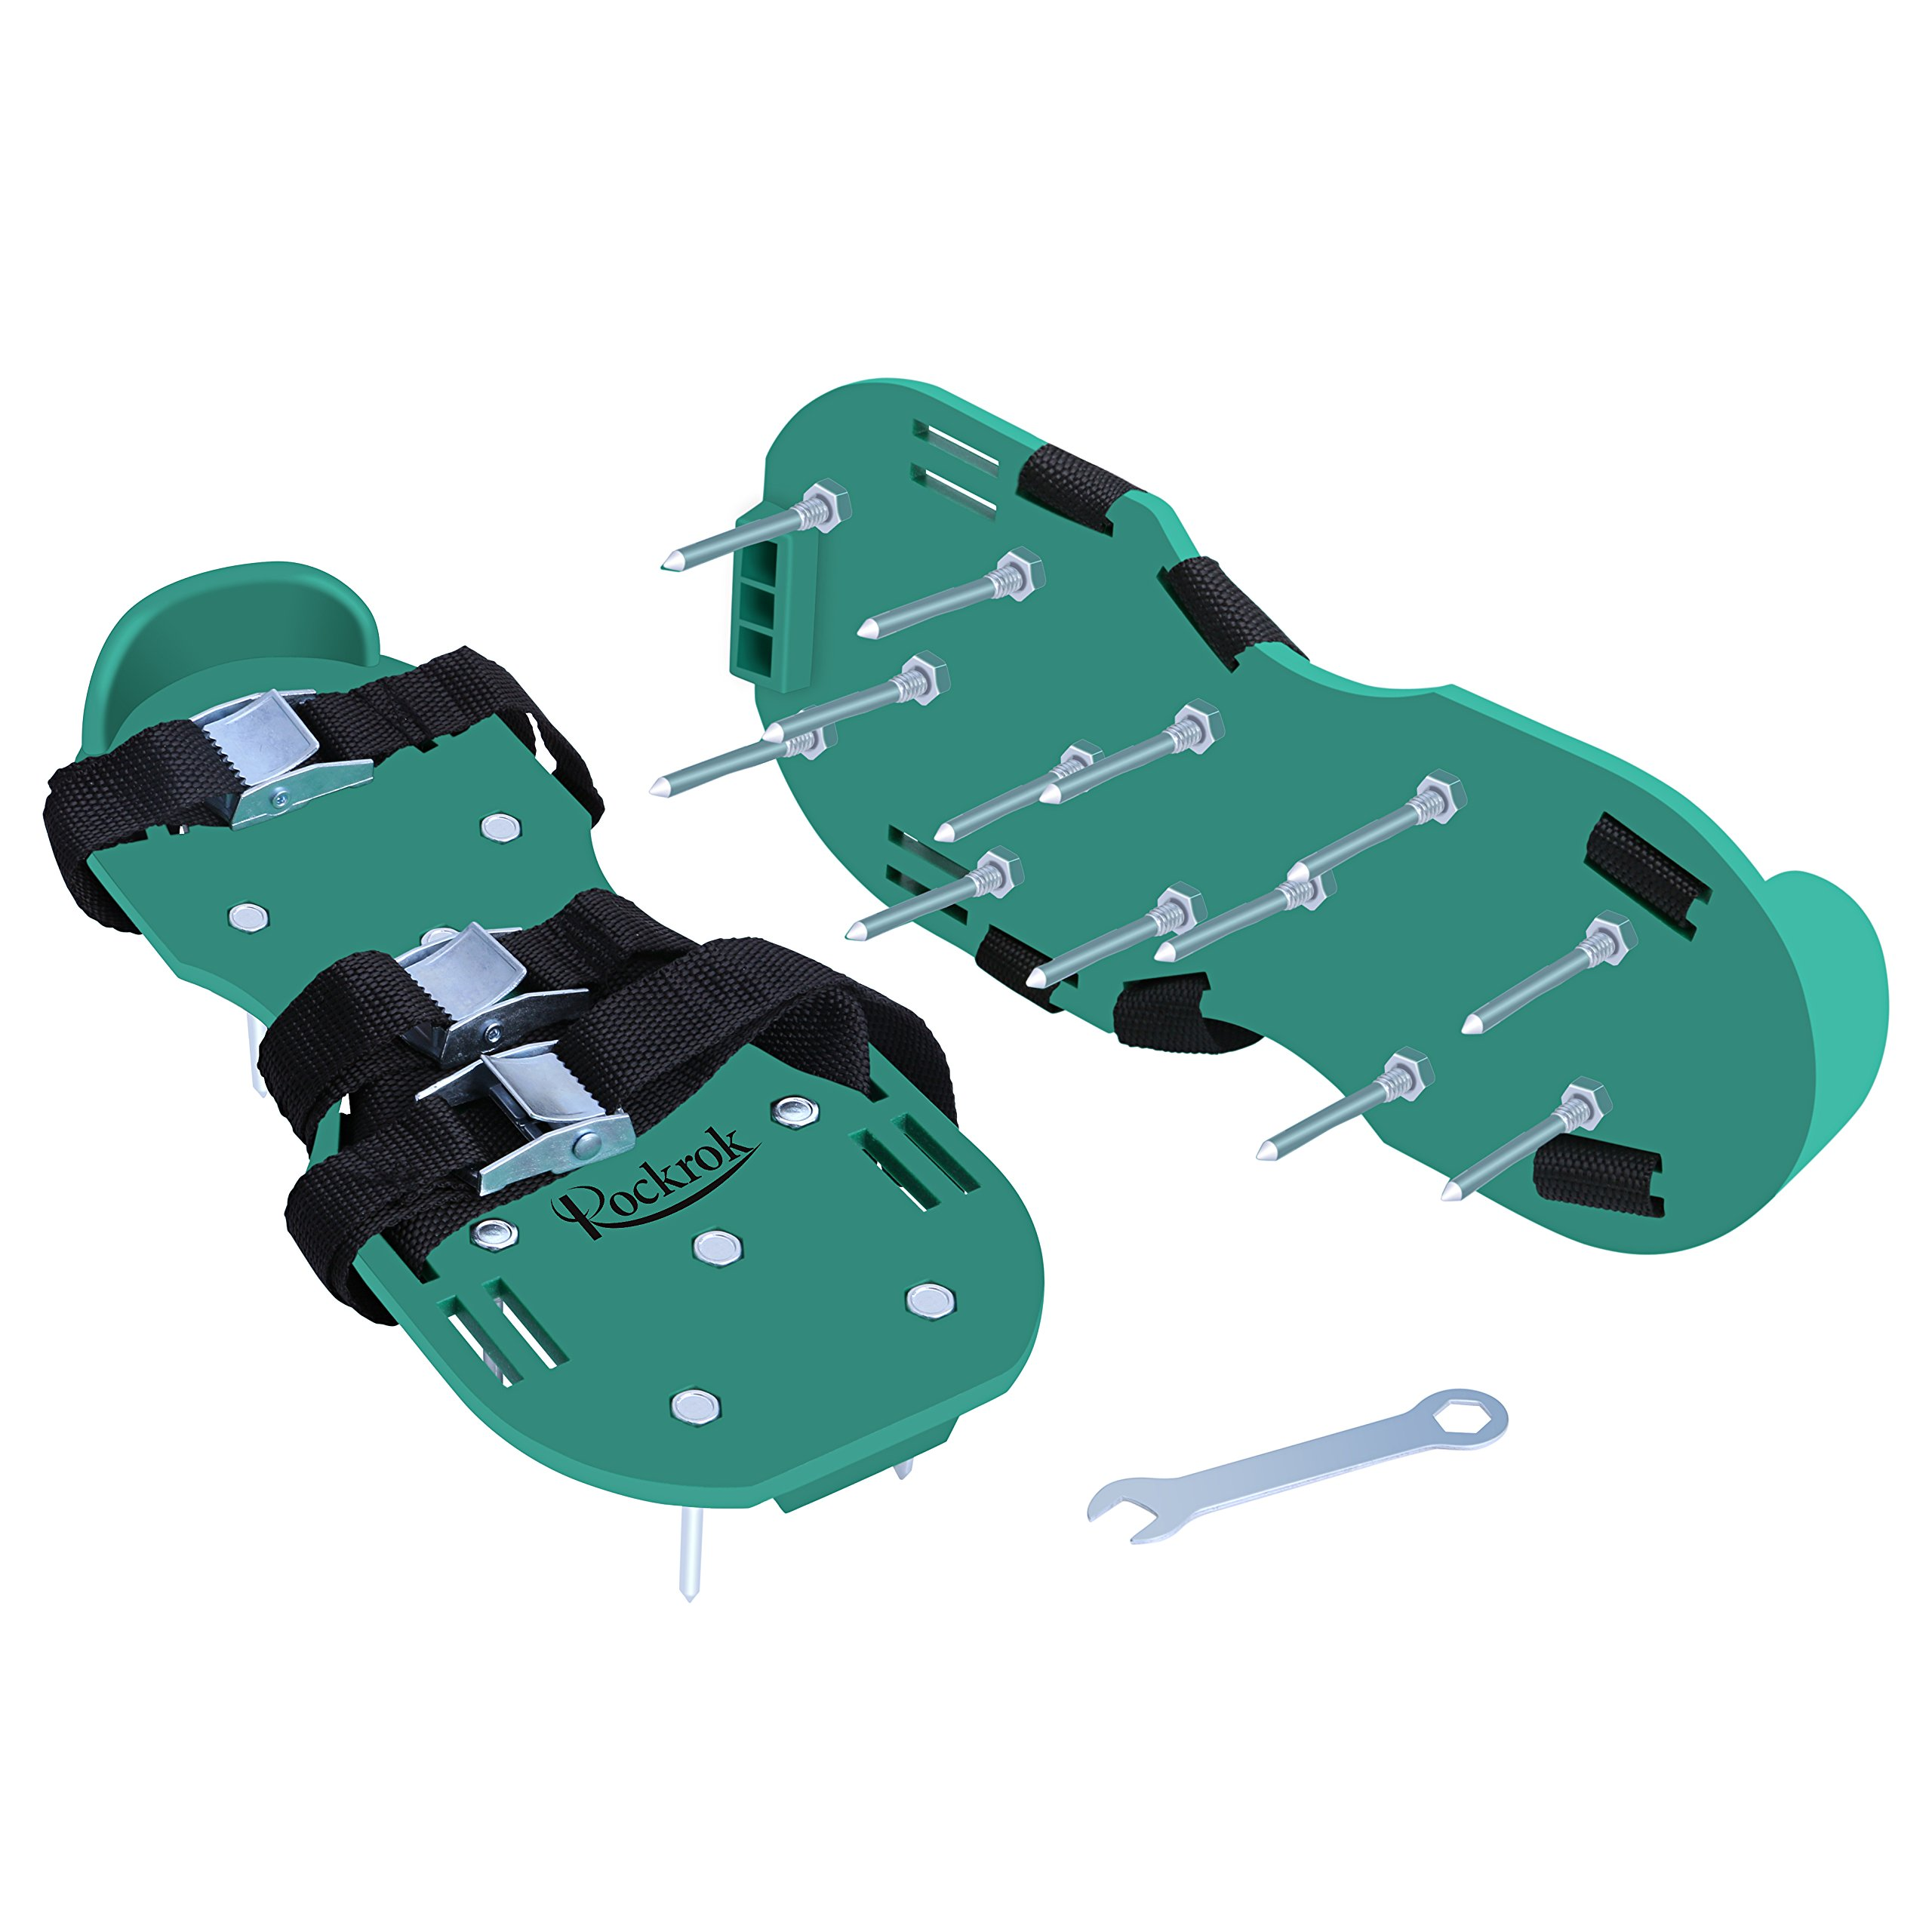 Rockrok Lawn Aerator Shoes, Heavy Duty 2'' Spike Sandals for Aerating Your Garden Yard Soil - 3 Adjustable Straps and Metal Buckles - 1 Size Fits All